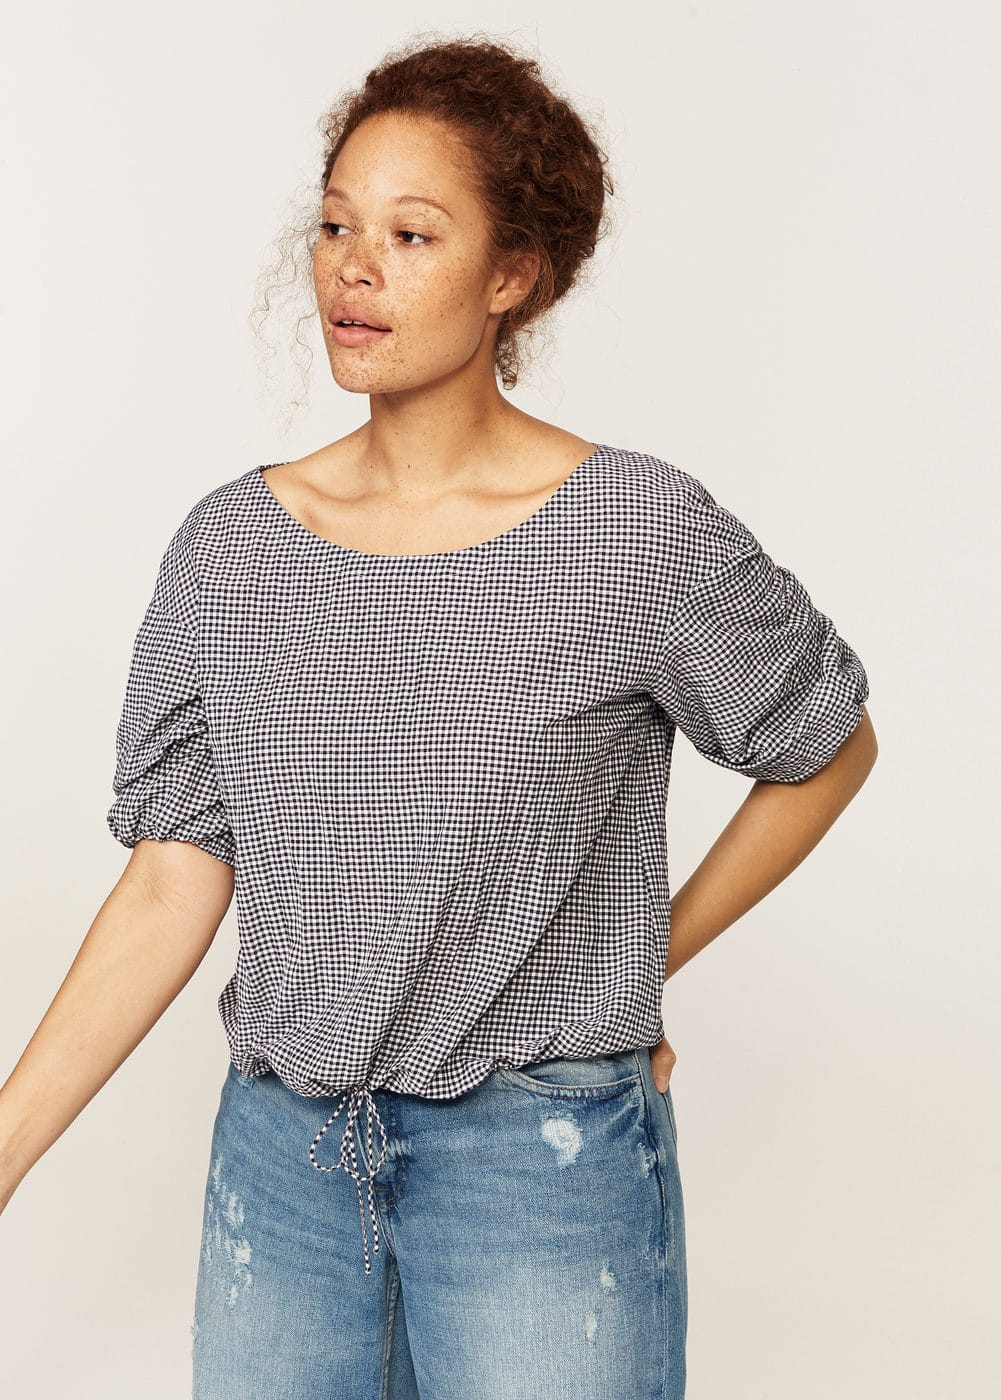 Gingham check blouse | VIOLETA BY MANGO